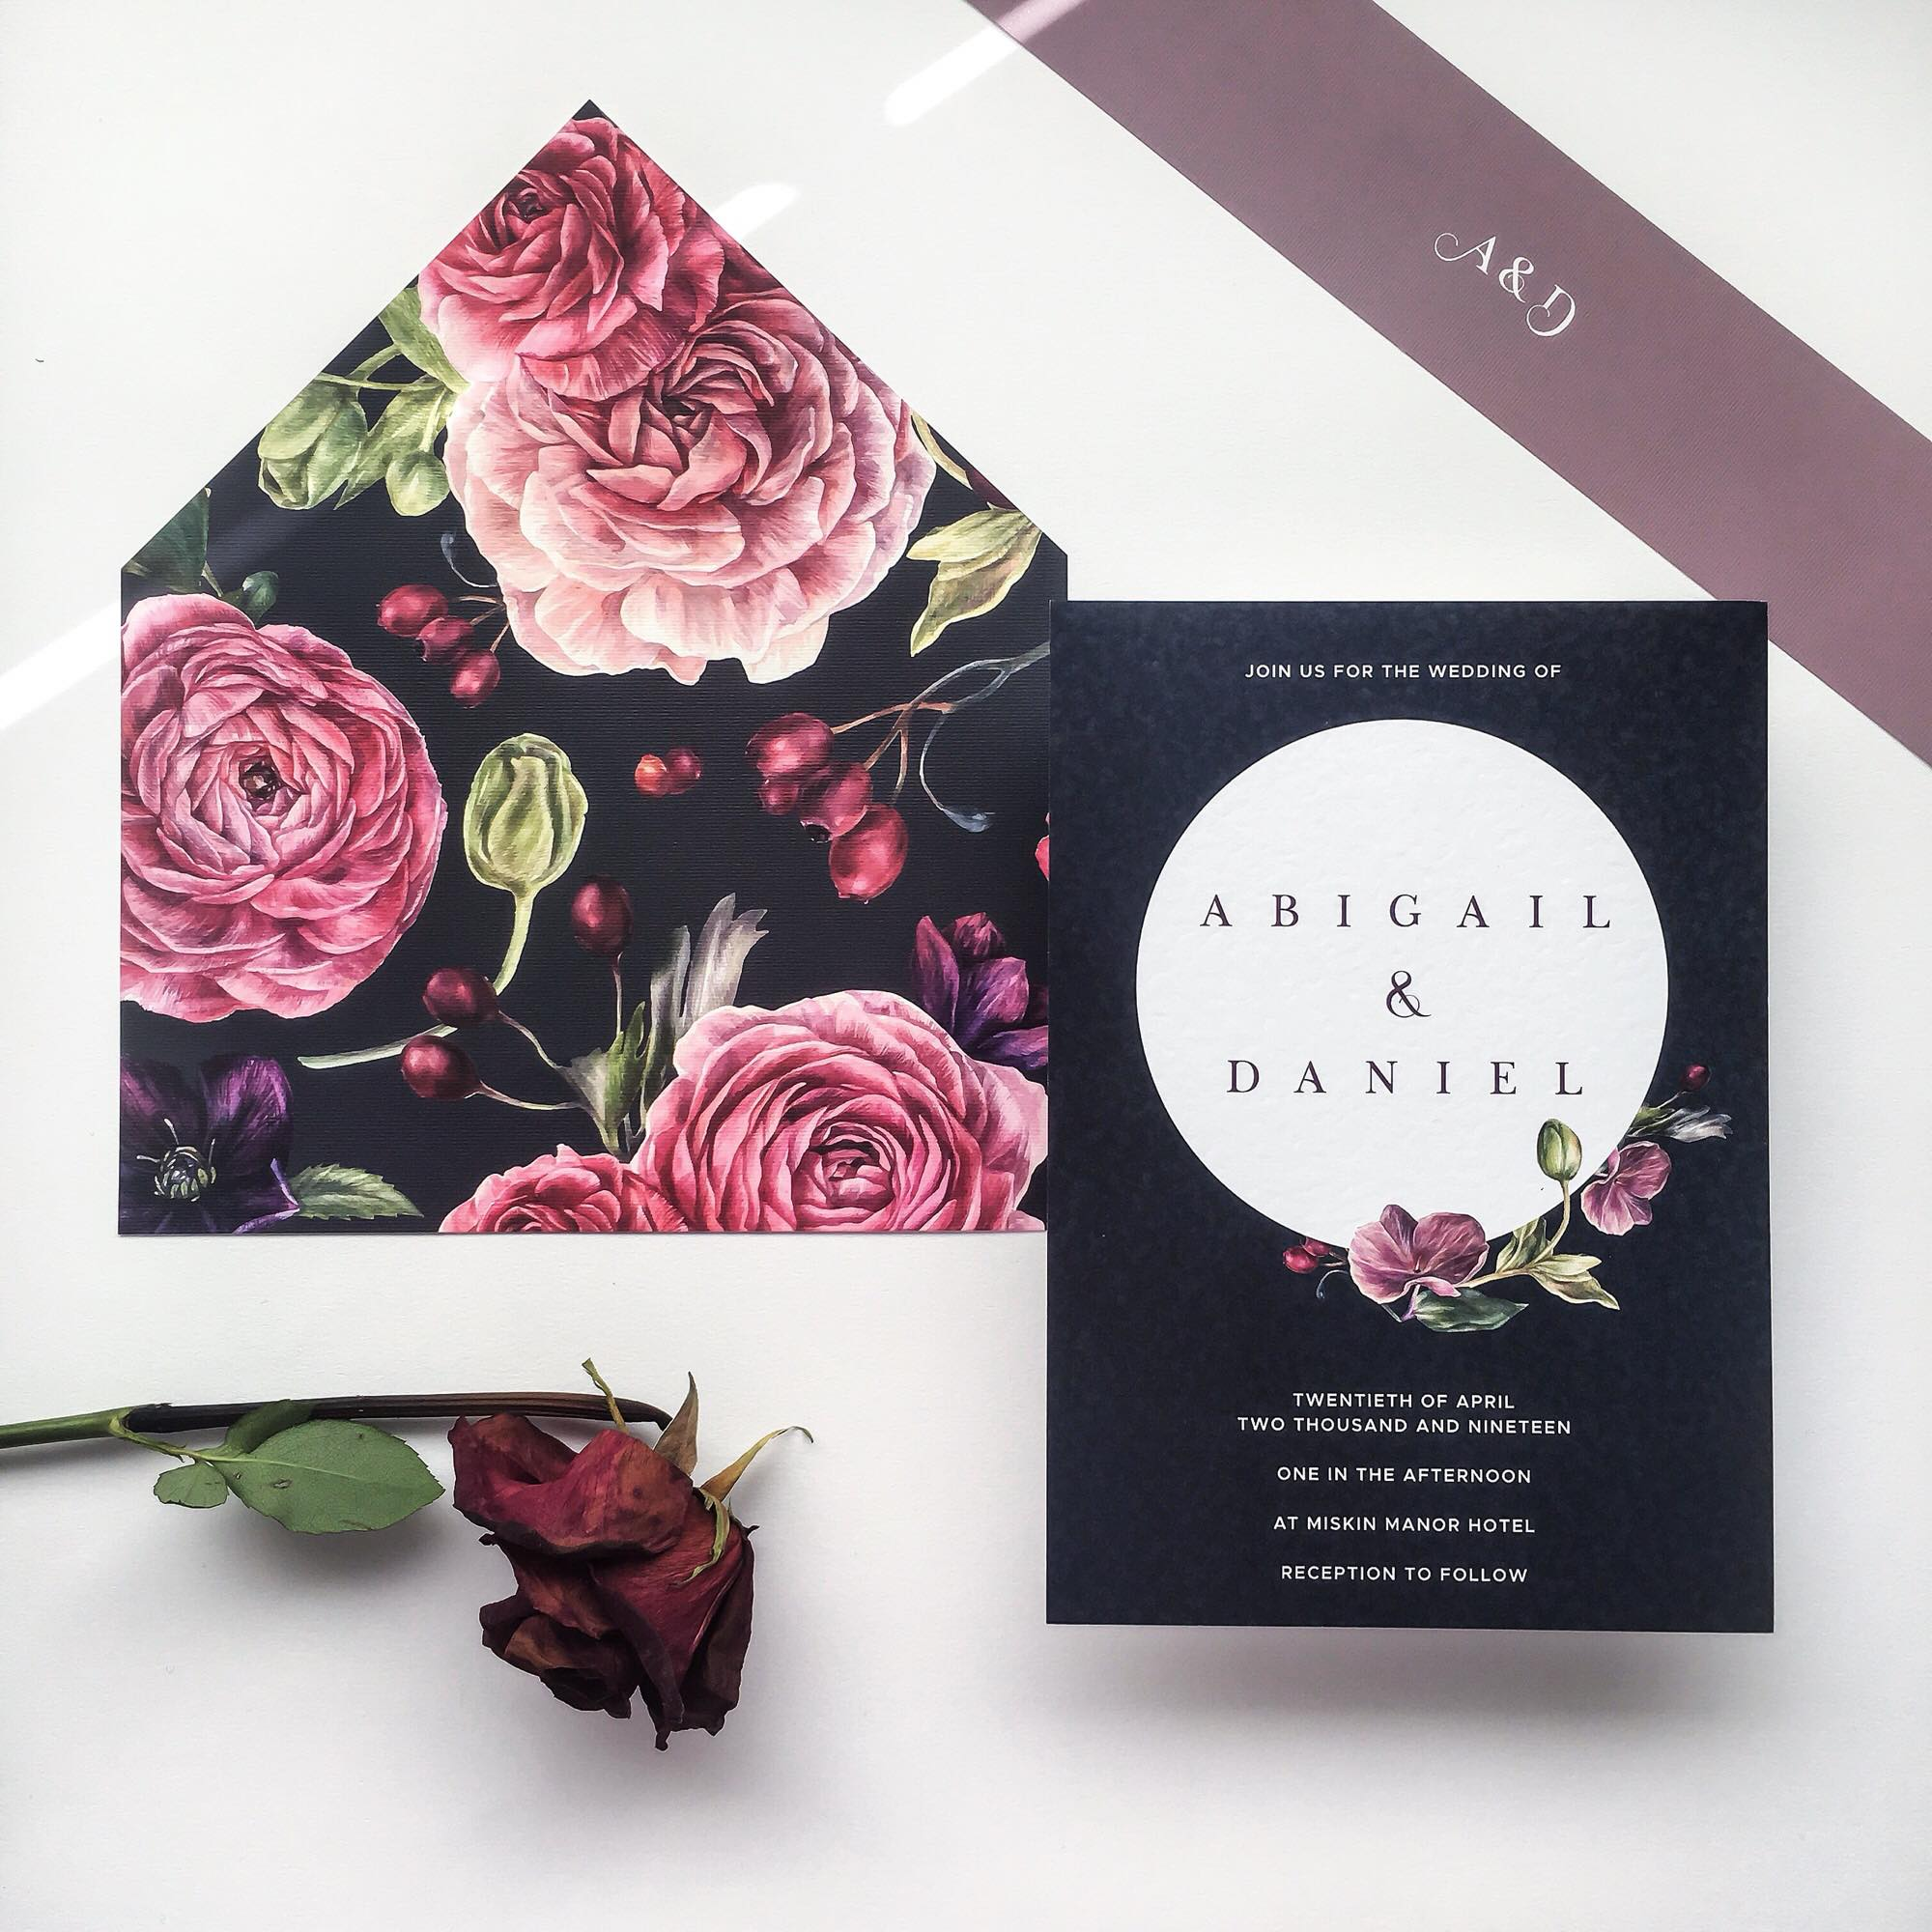 Dark and romantic printed wedding envelopes liners and invites